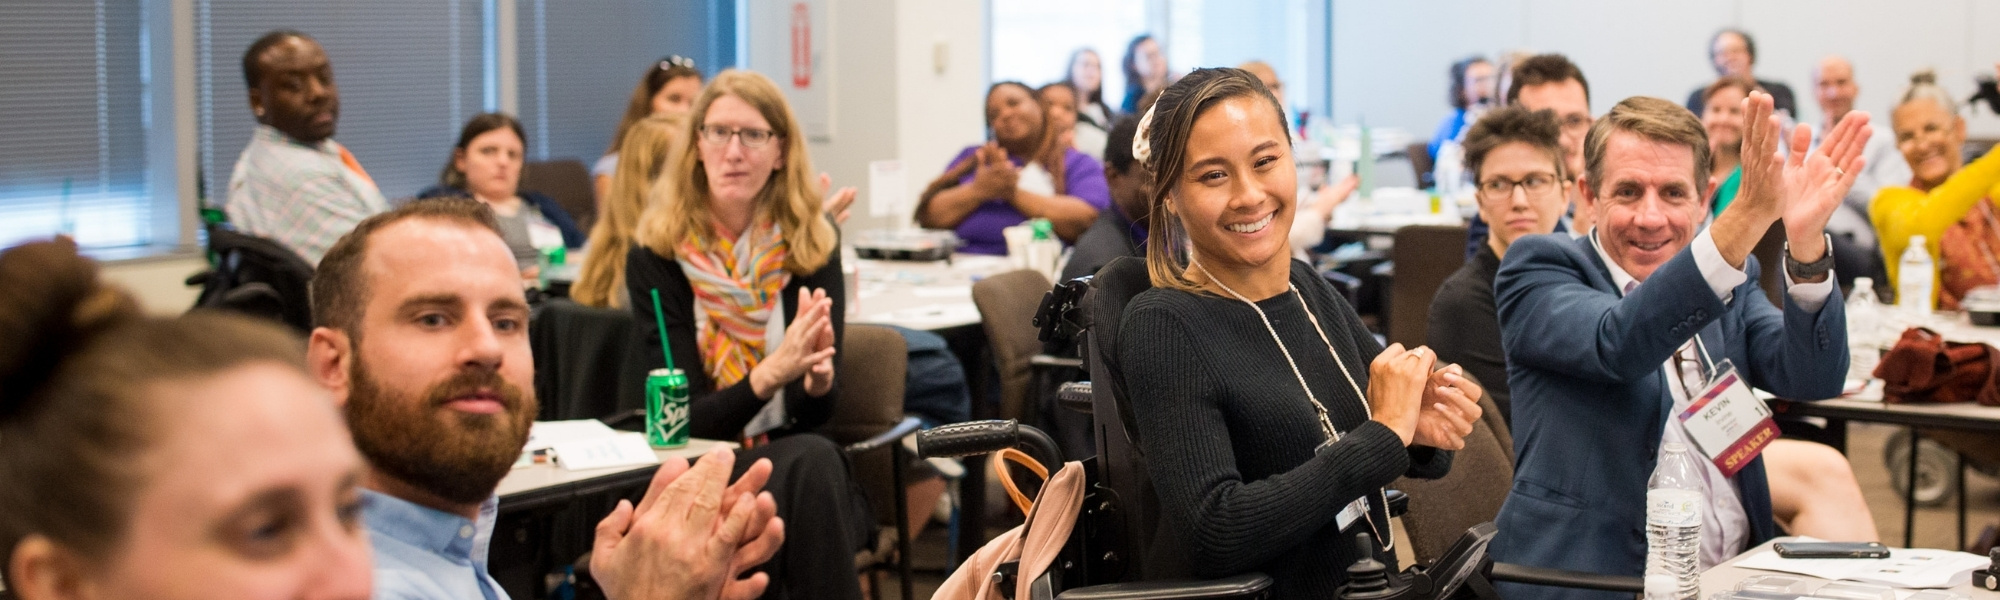 A large room of people sitting at various tables. They are of multiple identities and are cheering, clapping, and smiling. The focus rests on a smiling woman with pulled back black hair, medium-toned skin, and is using a power chair.